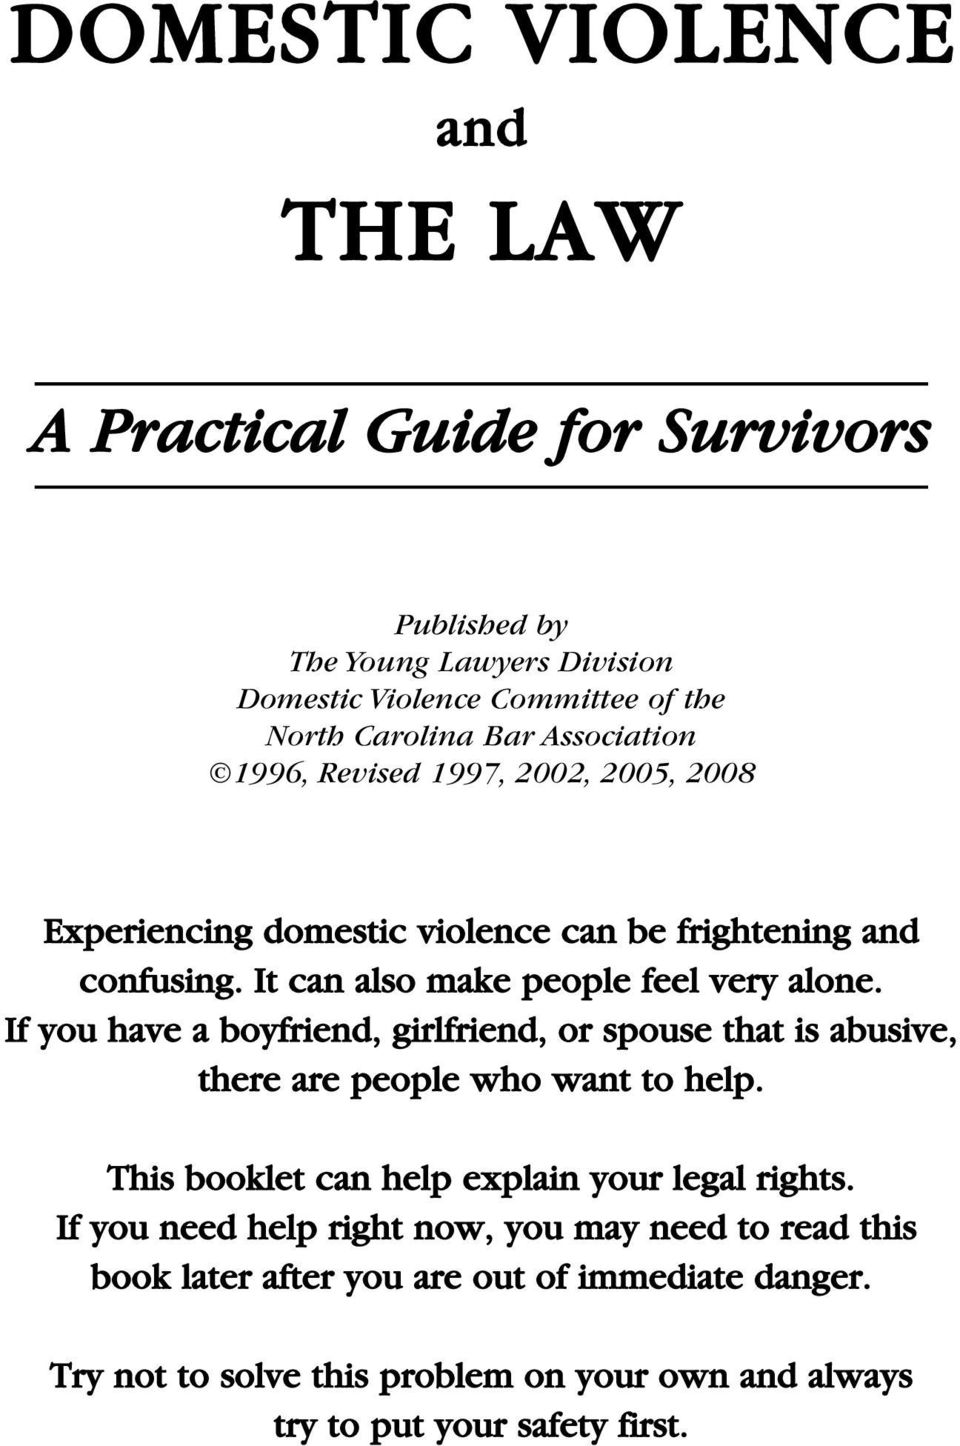 If you have a boyfriend, girlfriend, or spouse that is abusive, there are people who want to help. This booklet can help explain your legal rights.